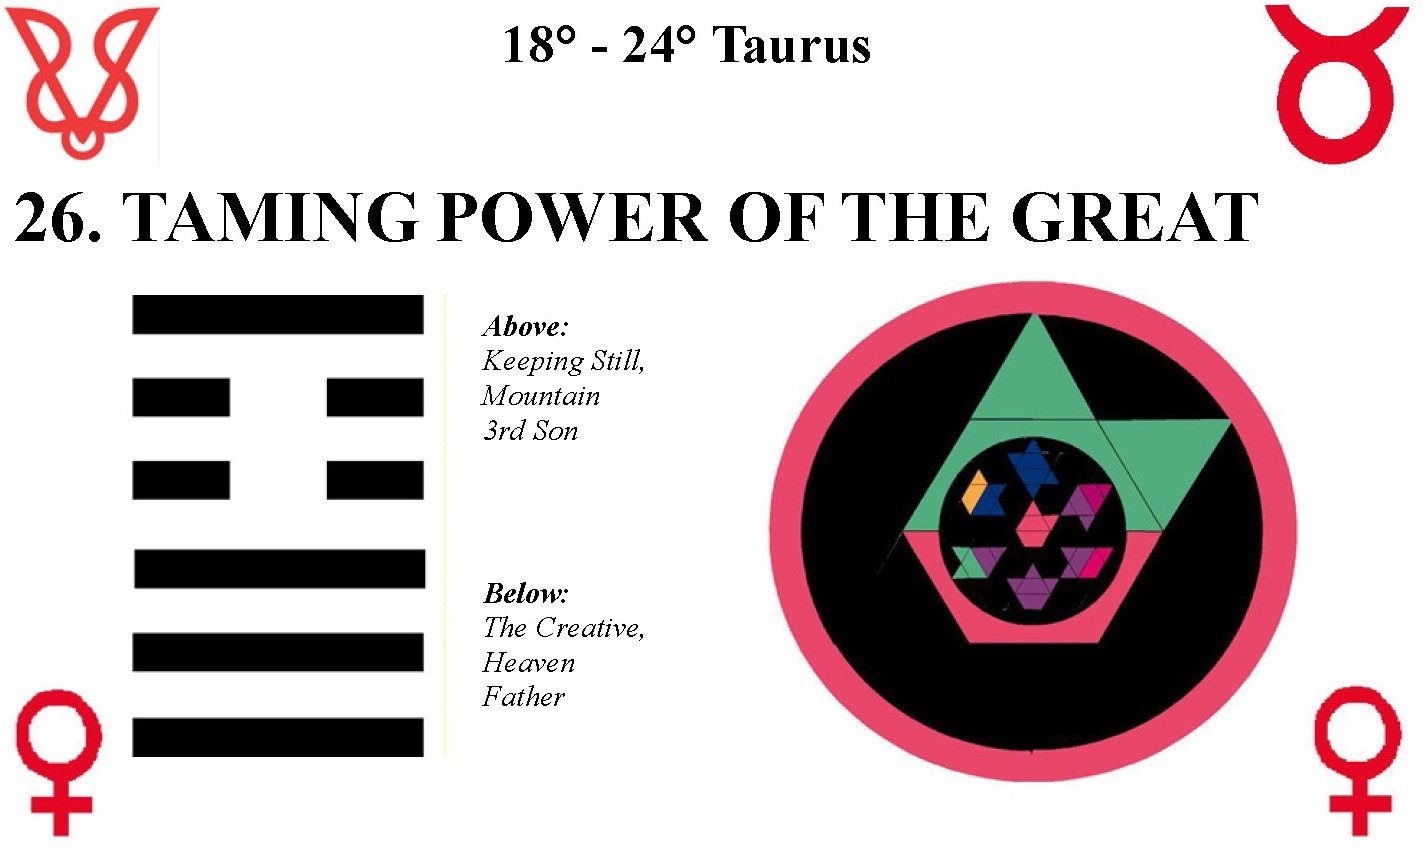 Hx26-Taming-Power-of-Great